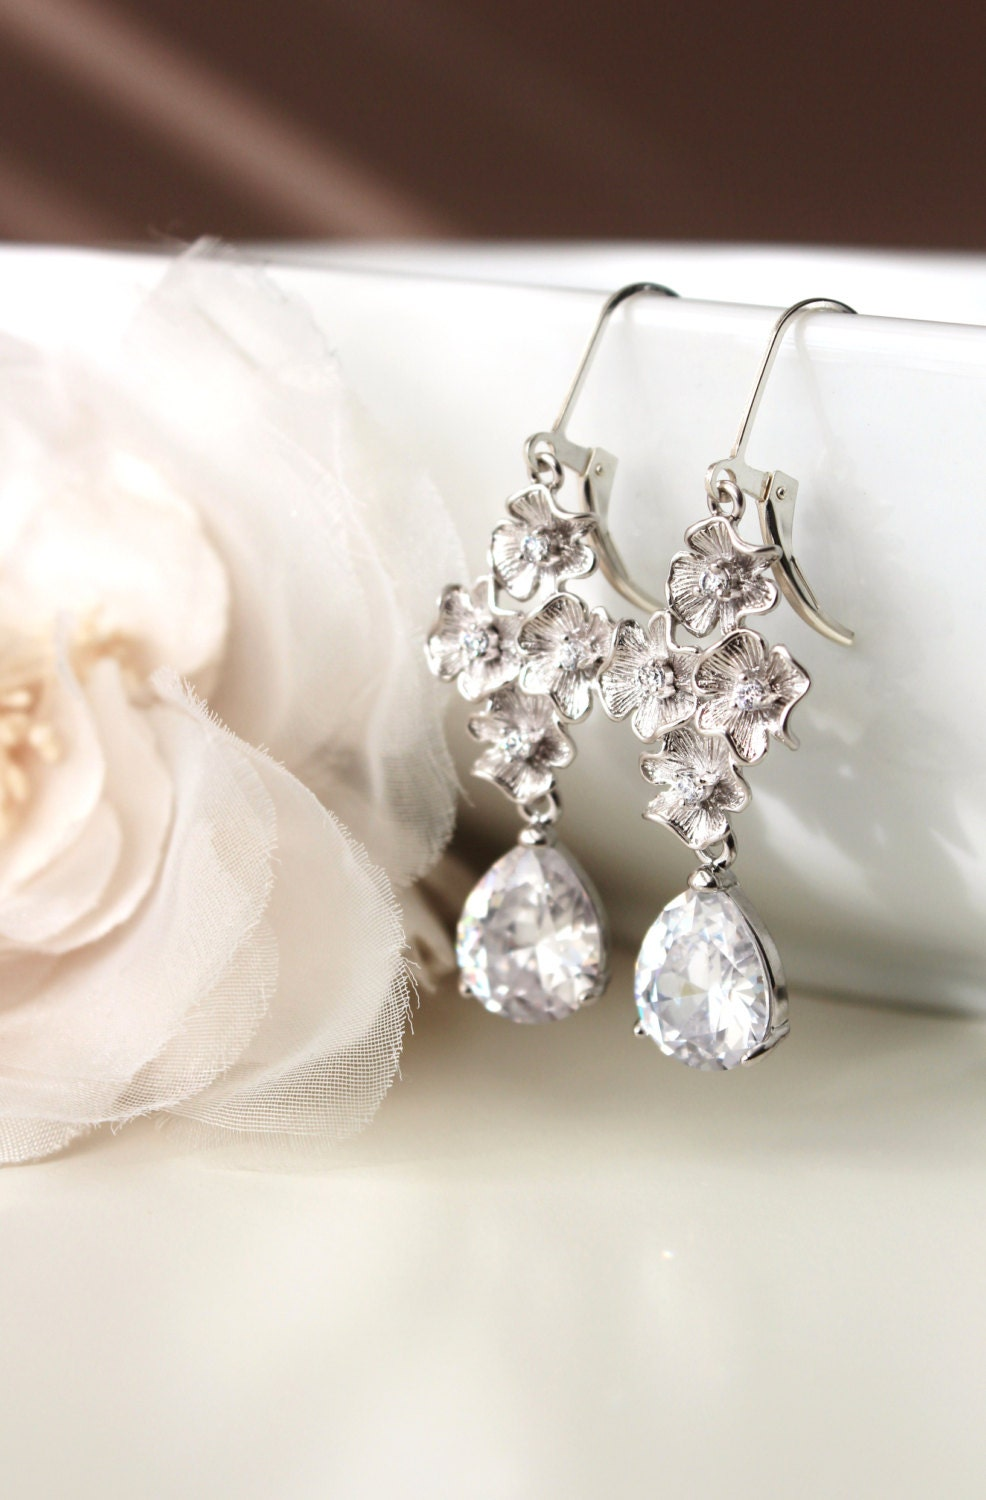 bridal earrings wedding earrings silver drop earrings